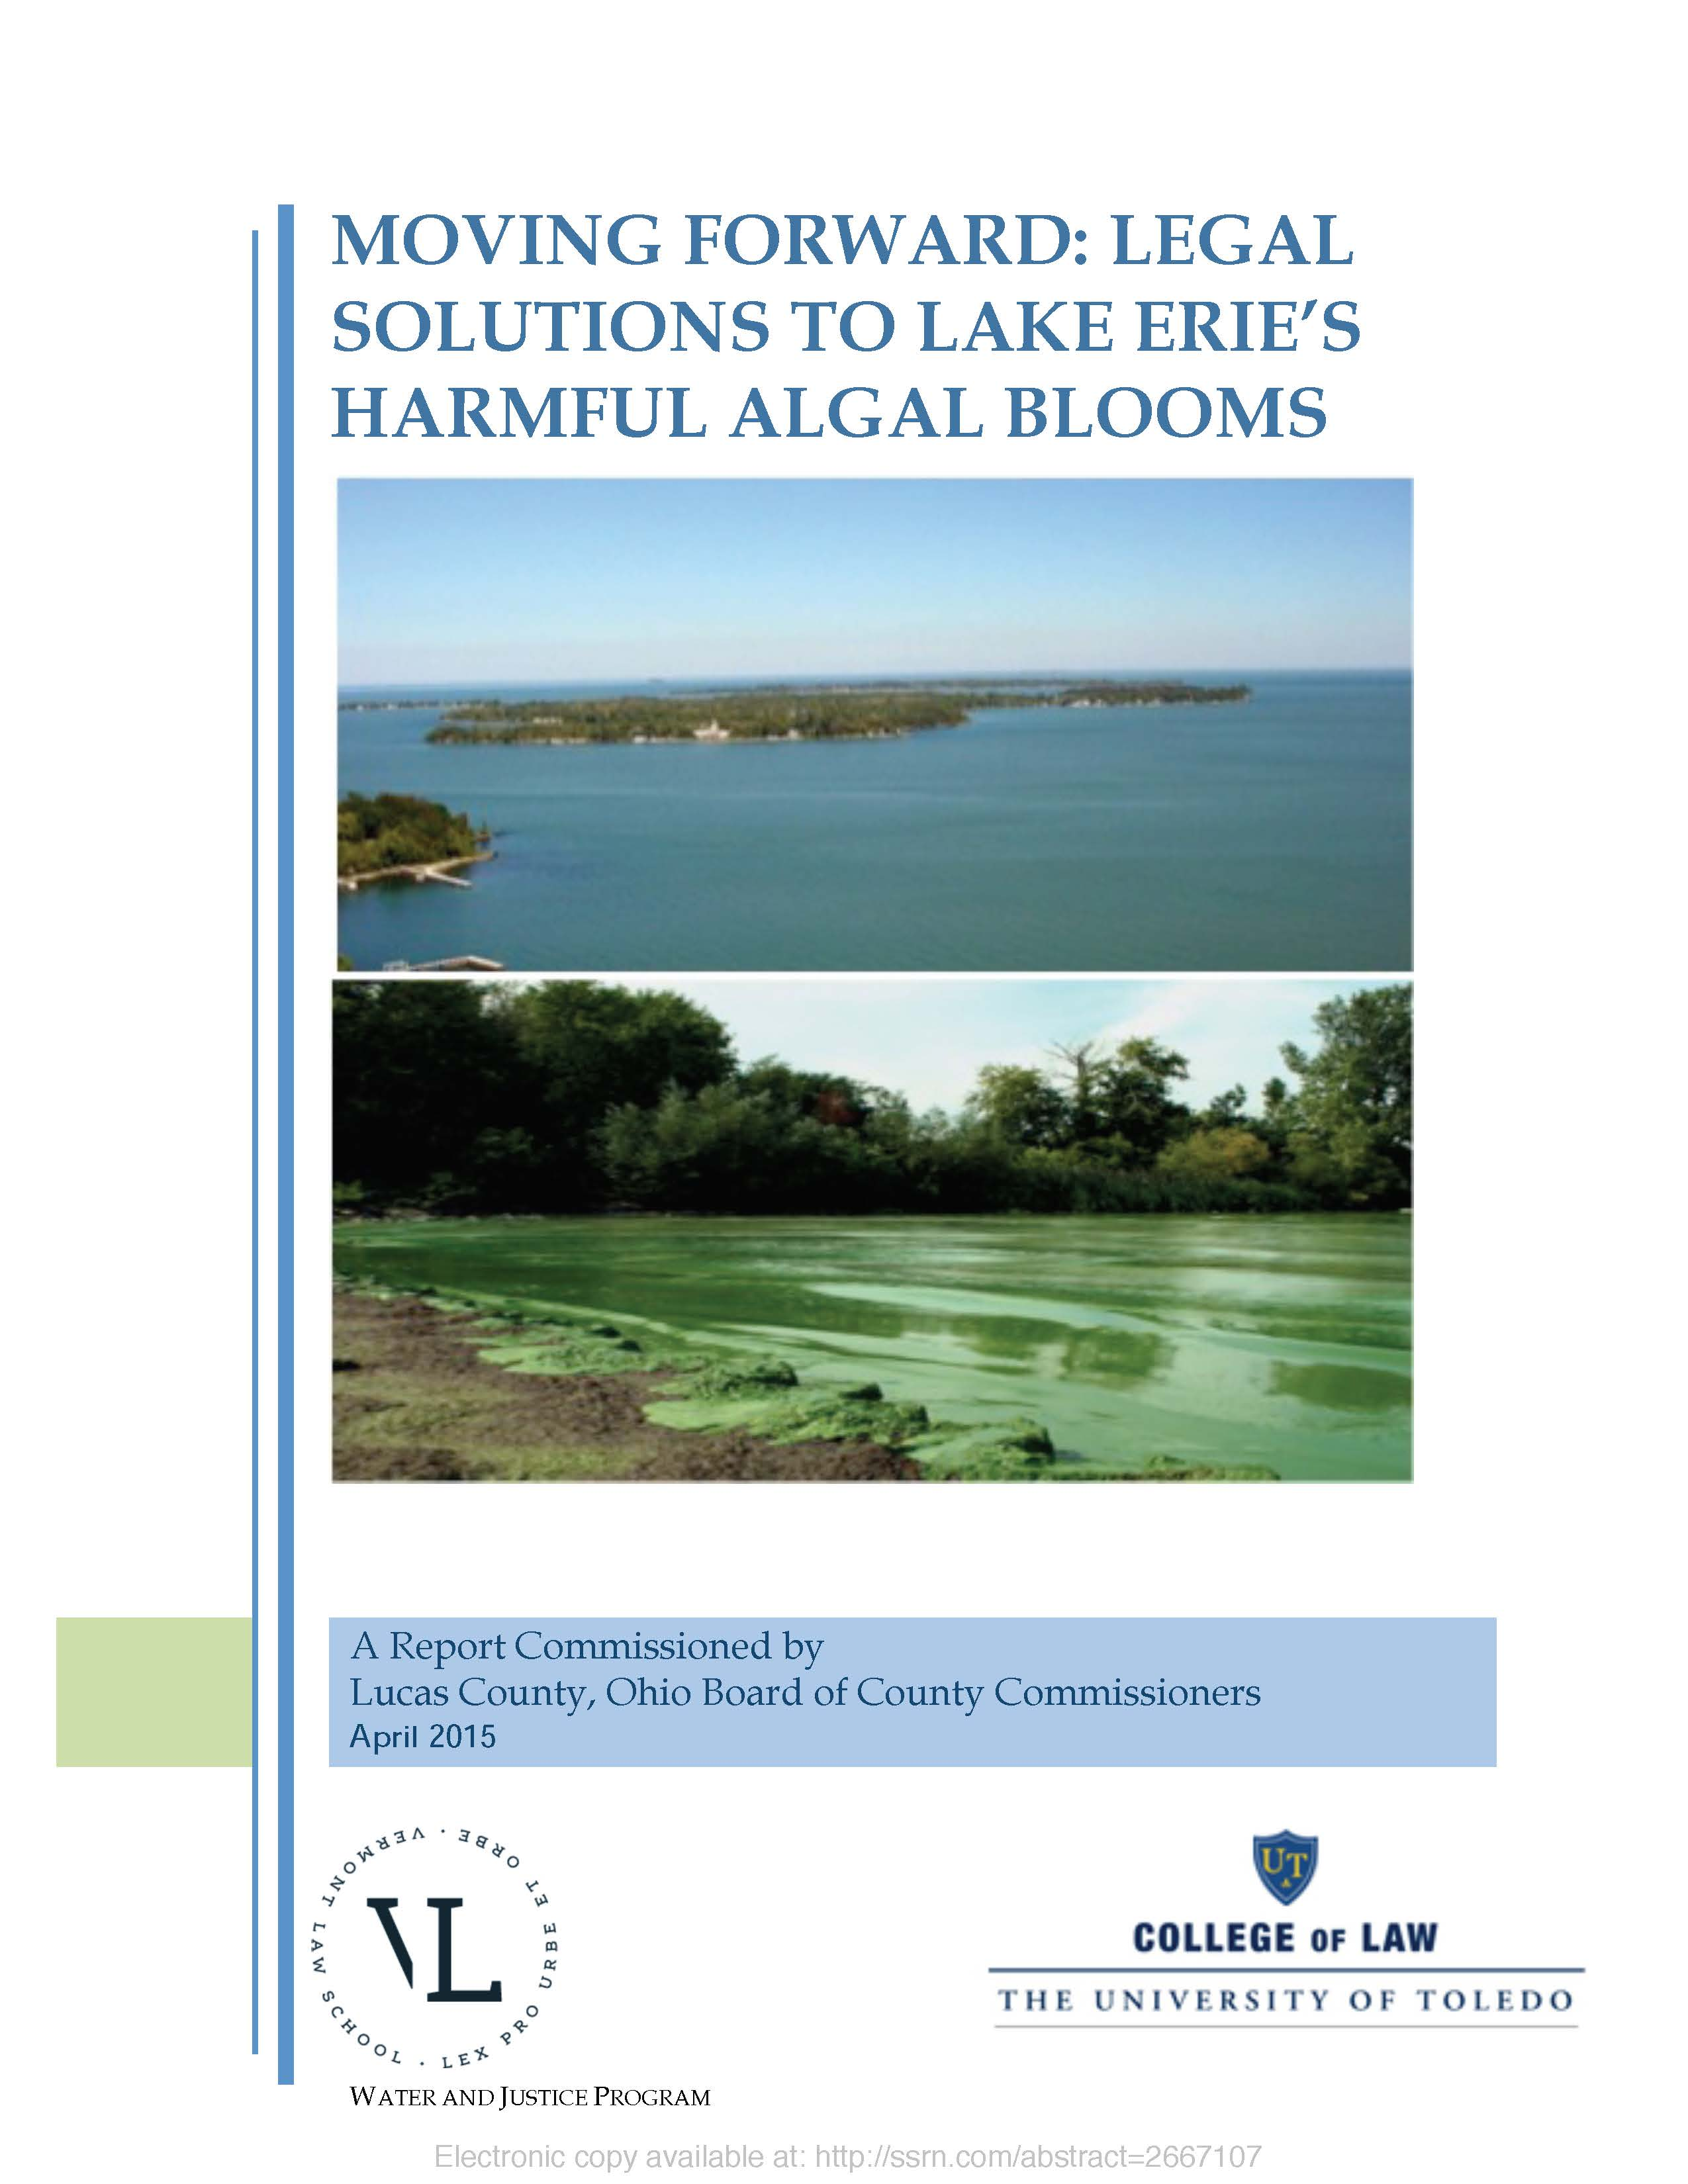 Moving Forward: Legal Solutions to Lake Erie's Harmful Algal Blooms